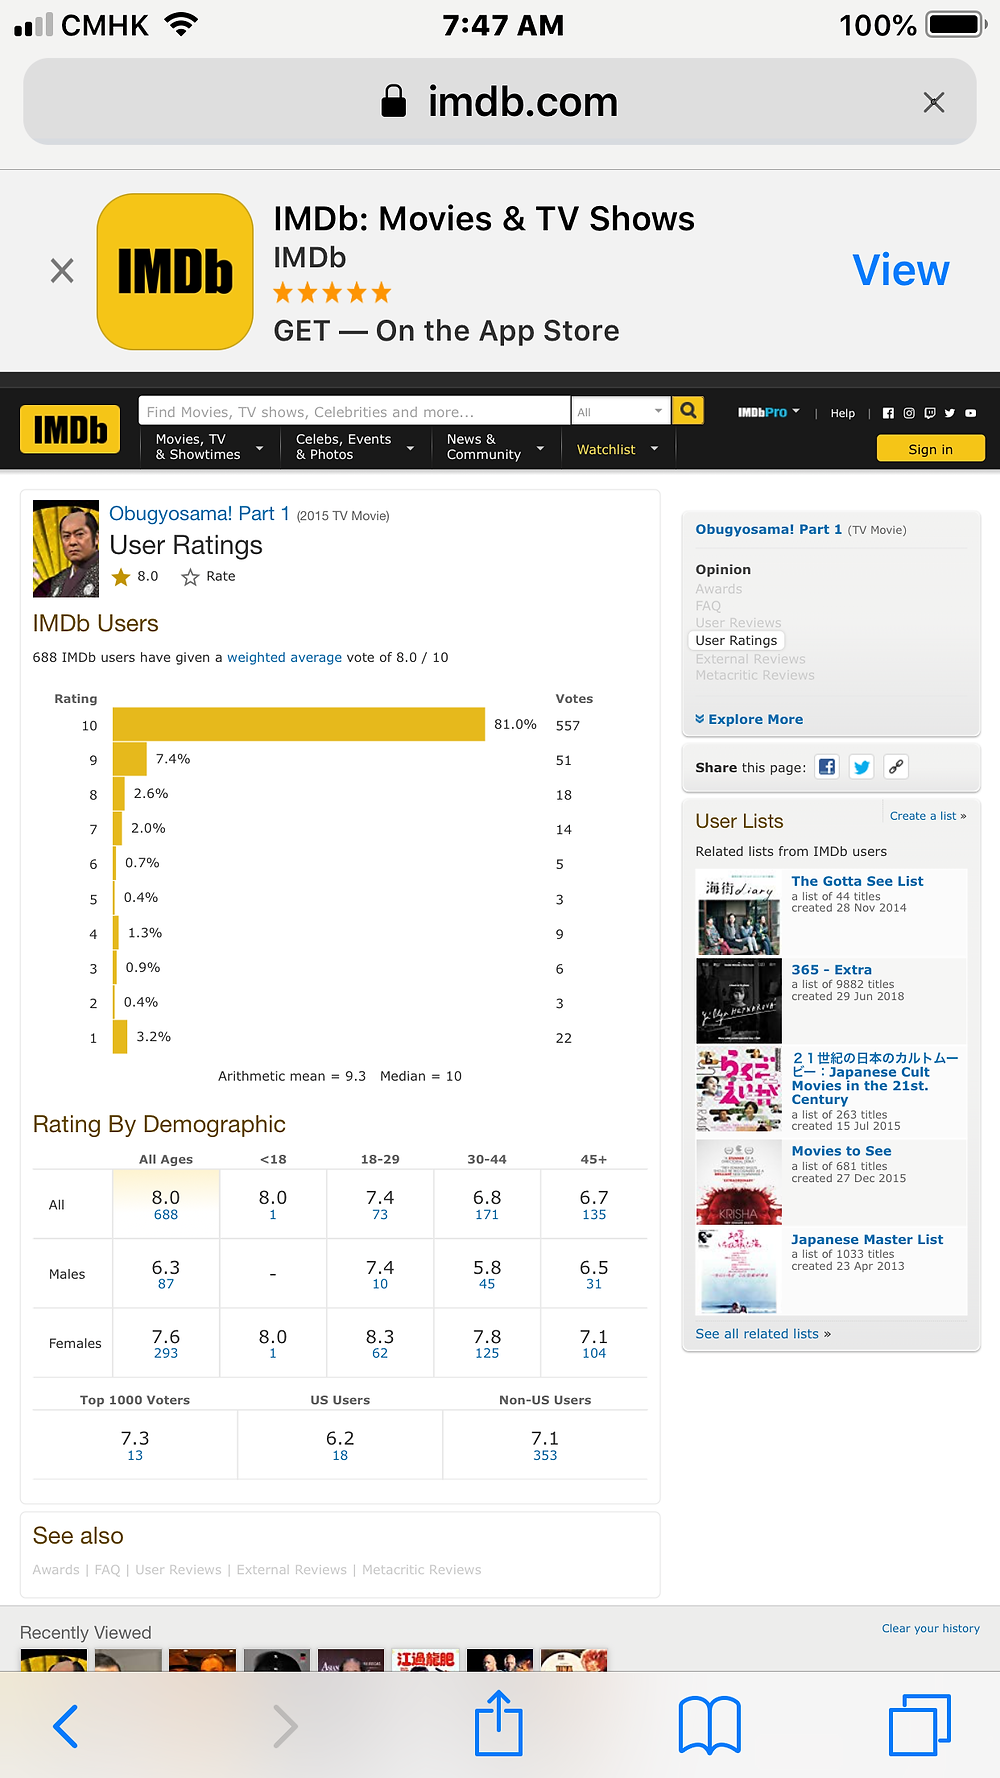 At 7:47 am (China), Aug.13 2019.  688 IMDb users voted 8.0 / 10; Top 1000 users voted 7.3; US users voted 6.2; Non US users voted 7.1.